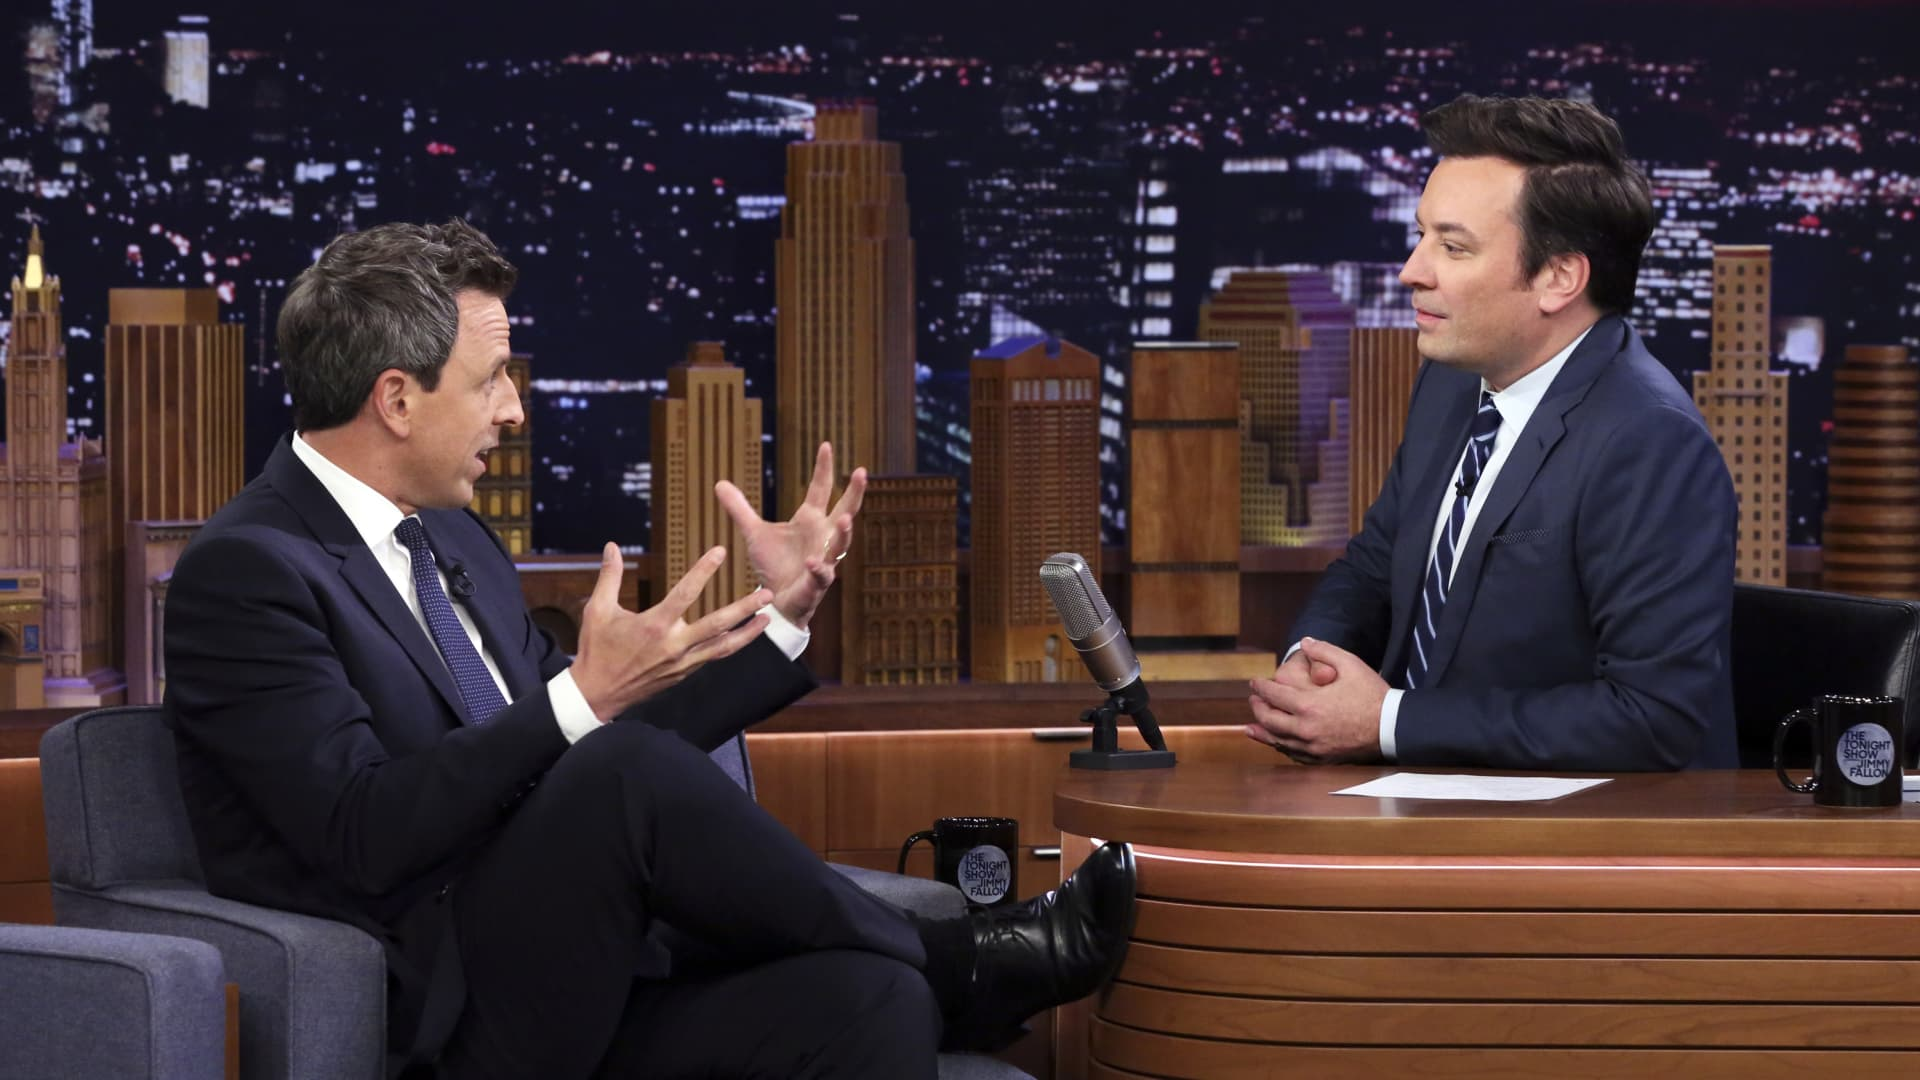 Comedian Seth Meyers during an interview with host Jimmy Fallon on November 18, 2019